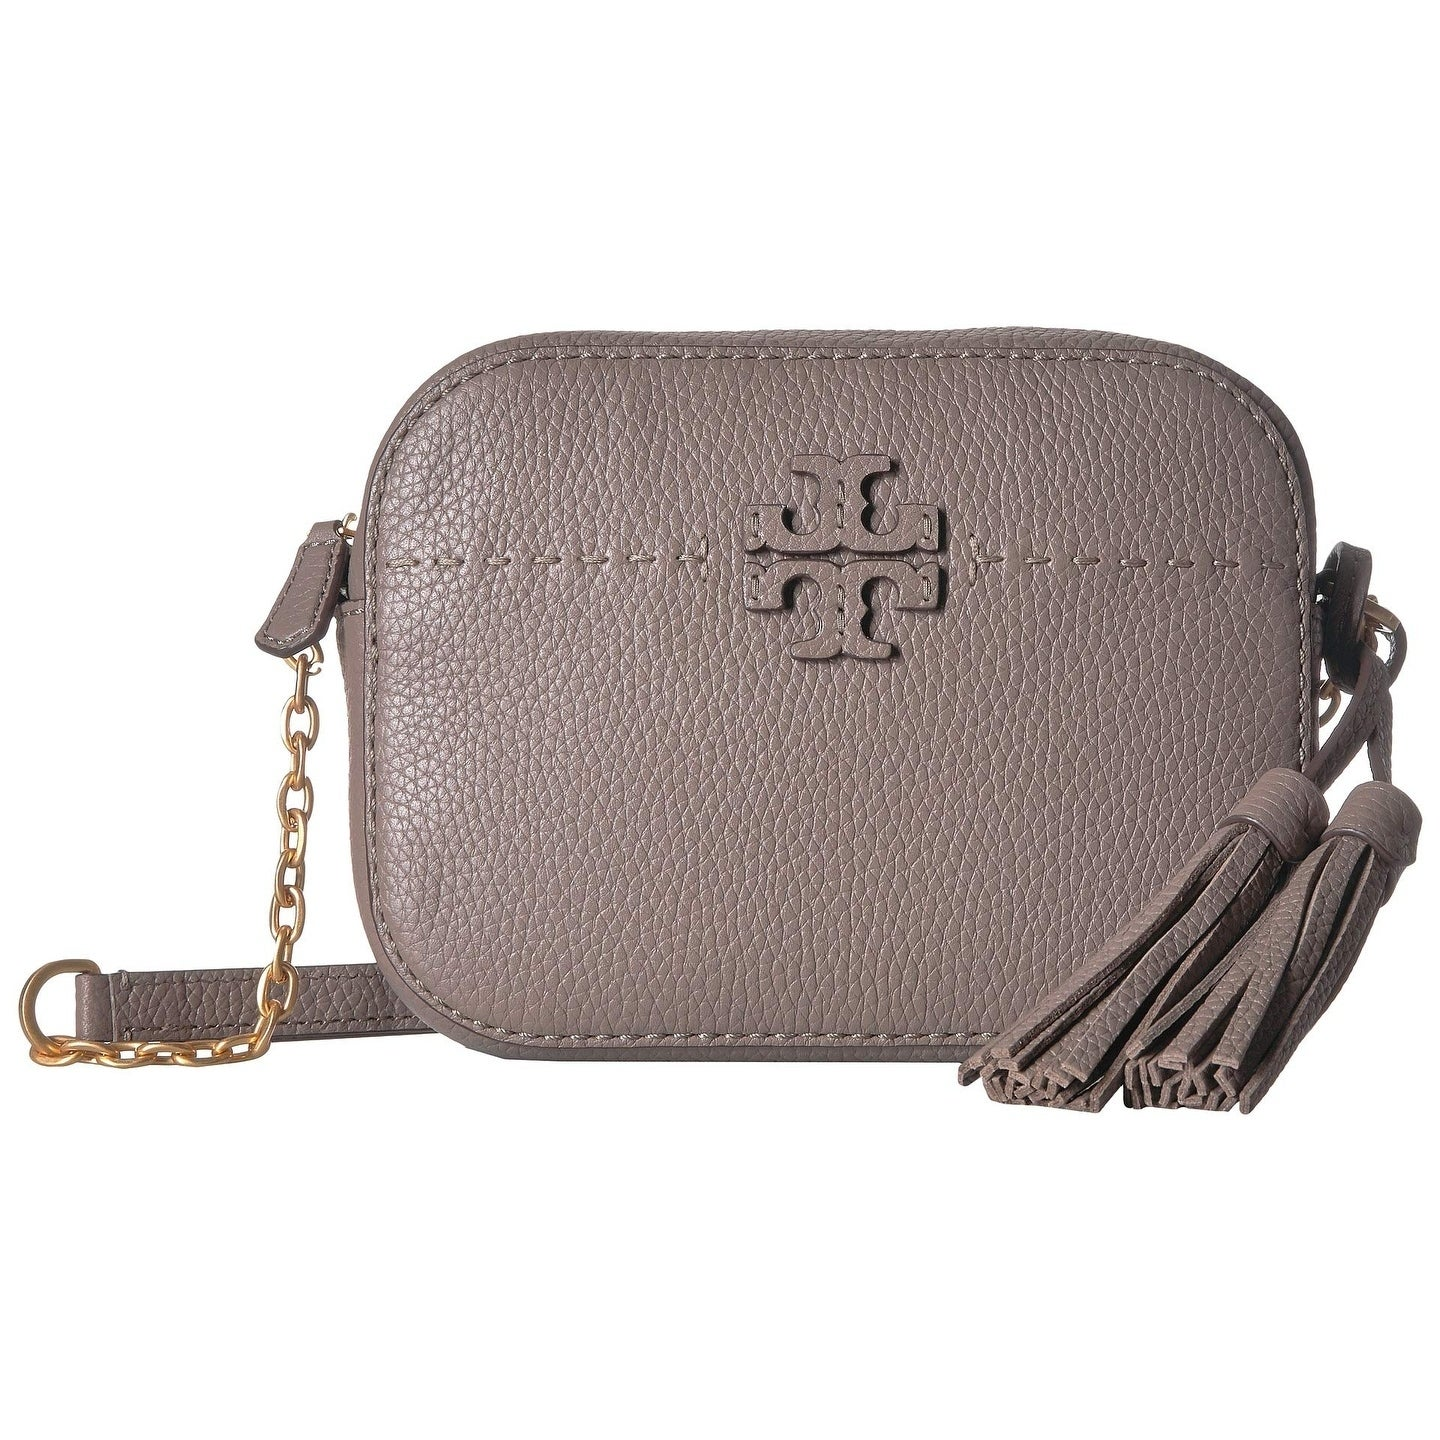 65a4fddbe94 Shop Tory Burch McGraw Camera Bag - On Sale - Free Shipping Today -  Overstock - 25444201